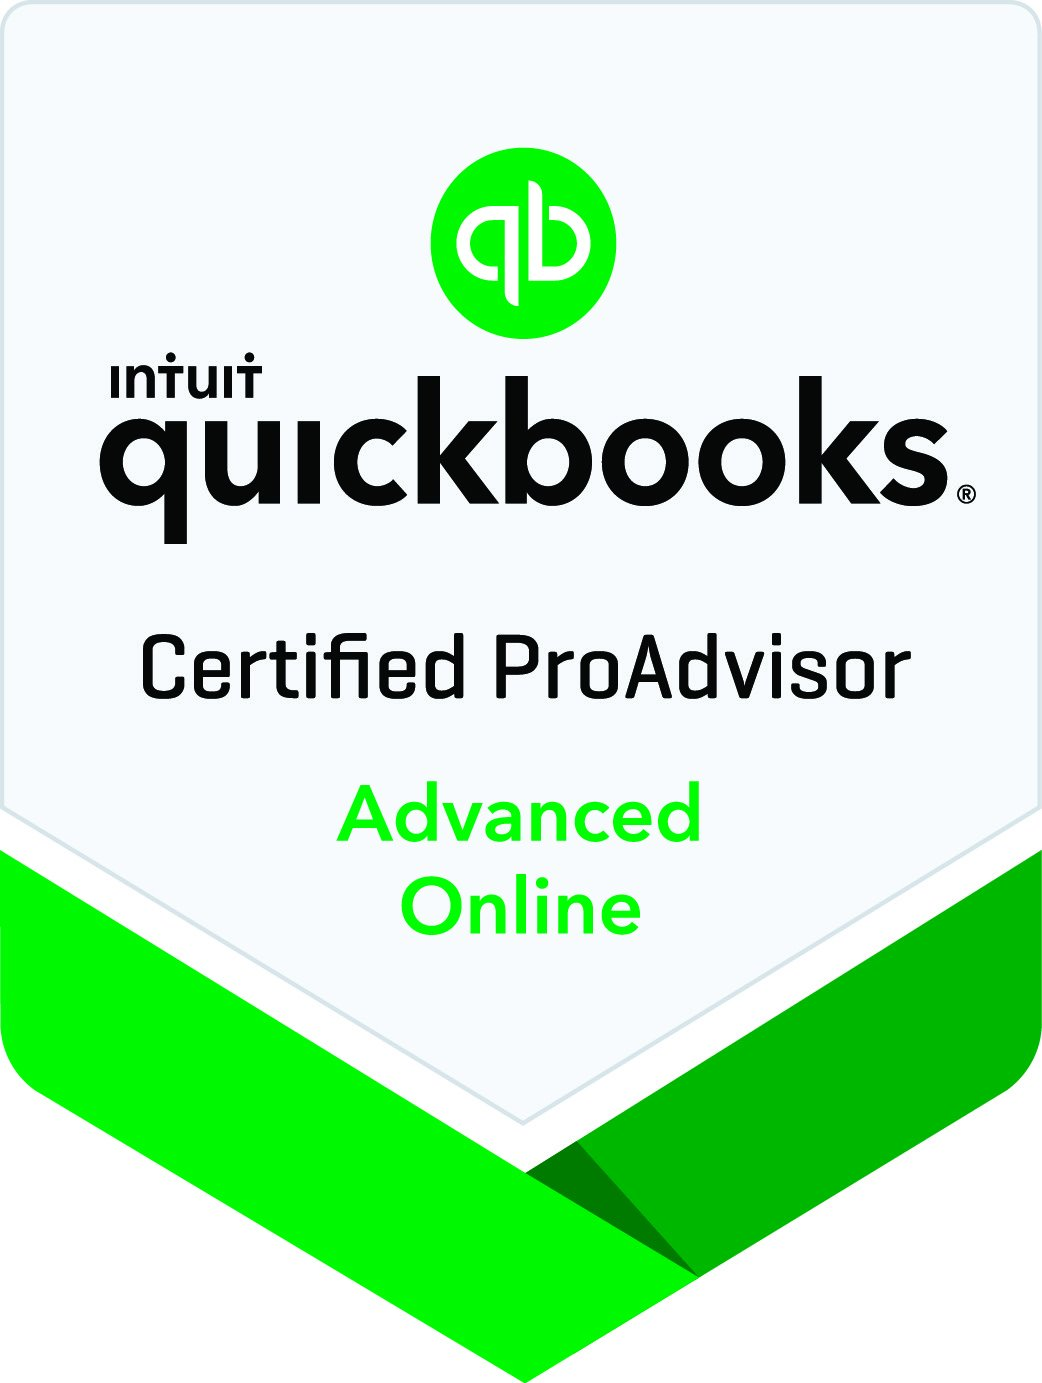 Quickbooks Glasgow